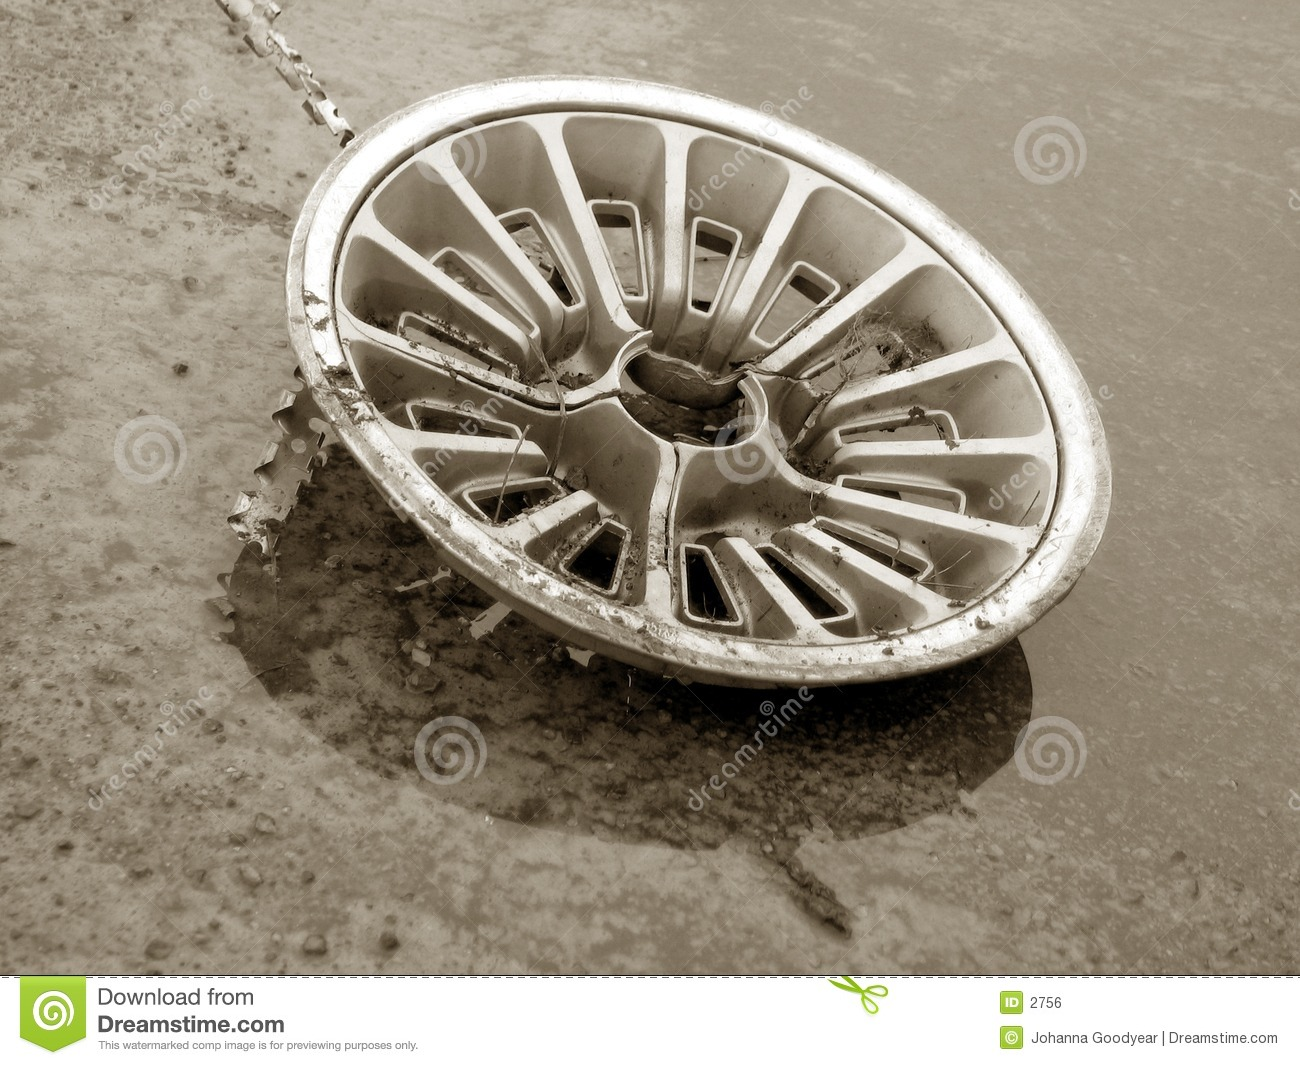 Stary hubcap